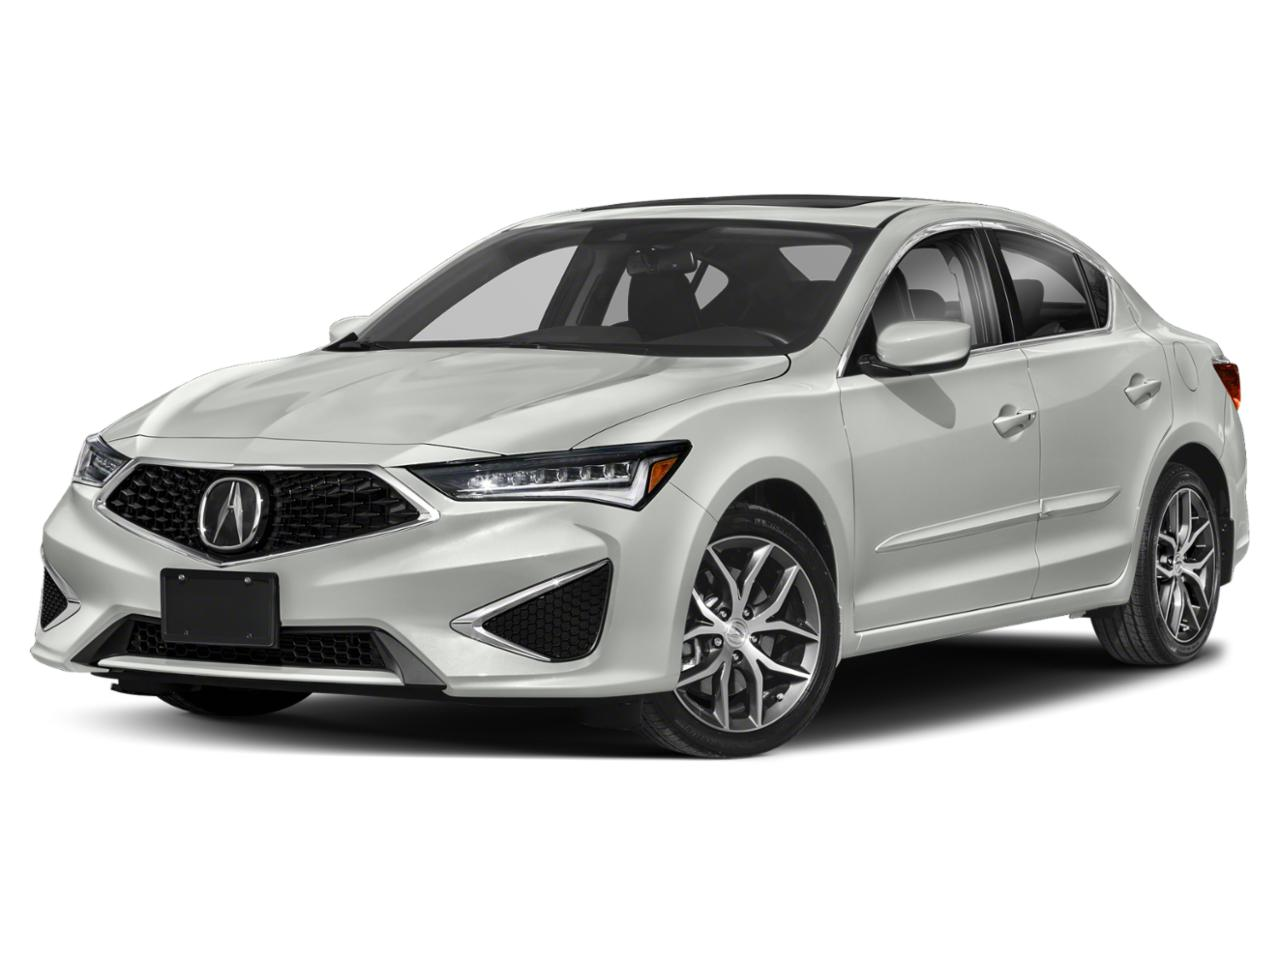 2020 Acura ILX Vehicle Photo in Pleasanton, CA 94588